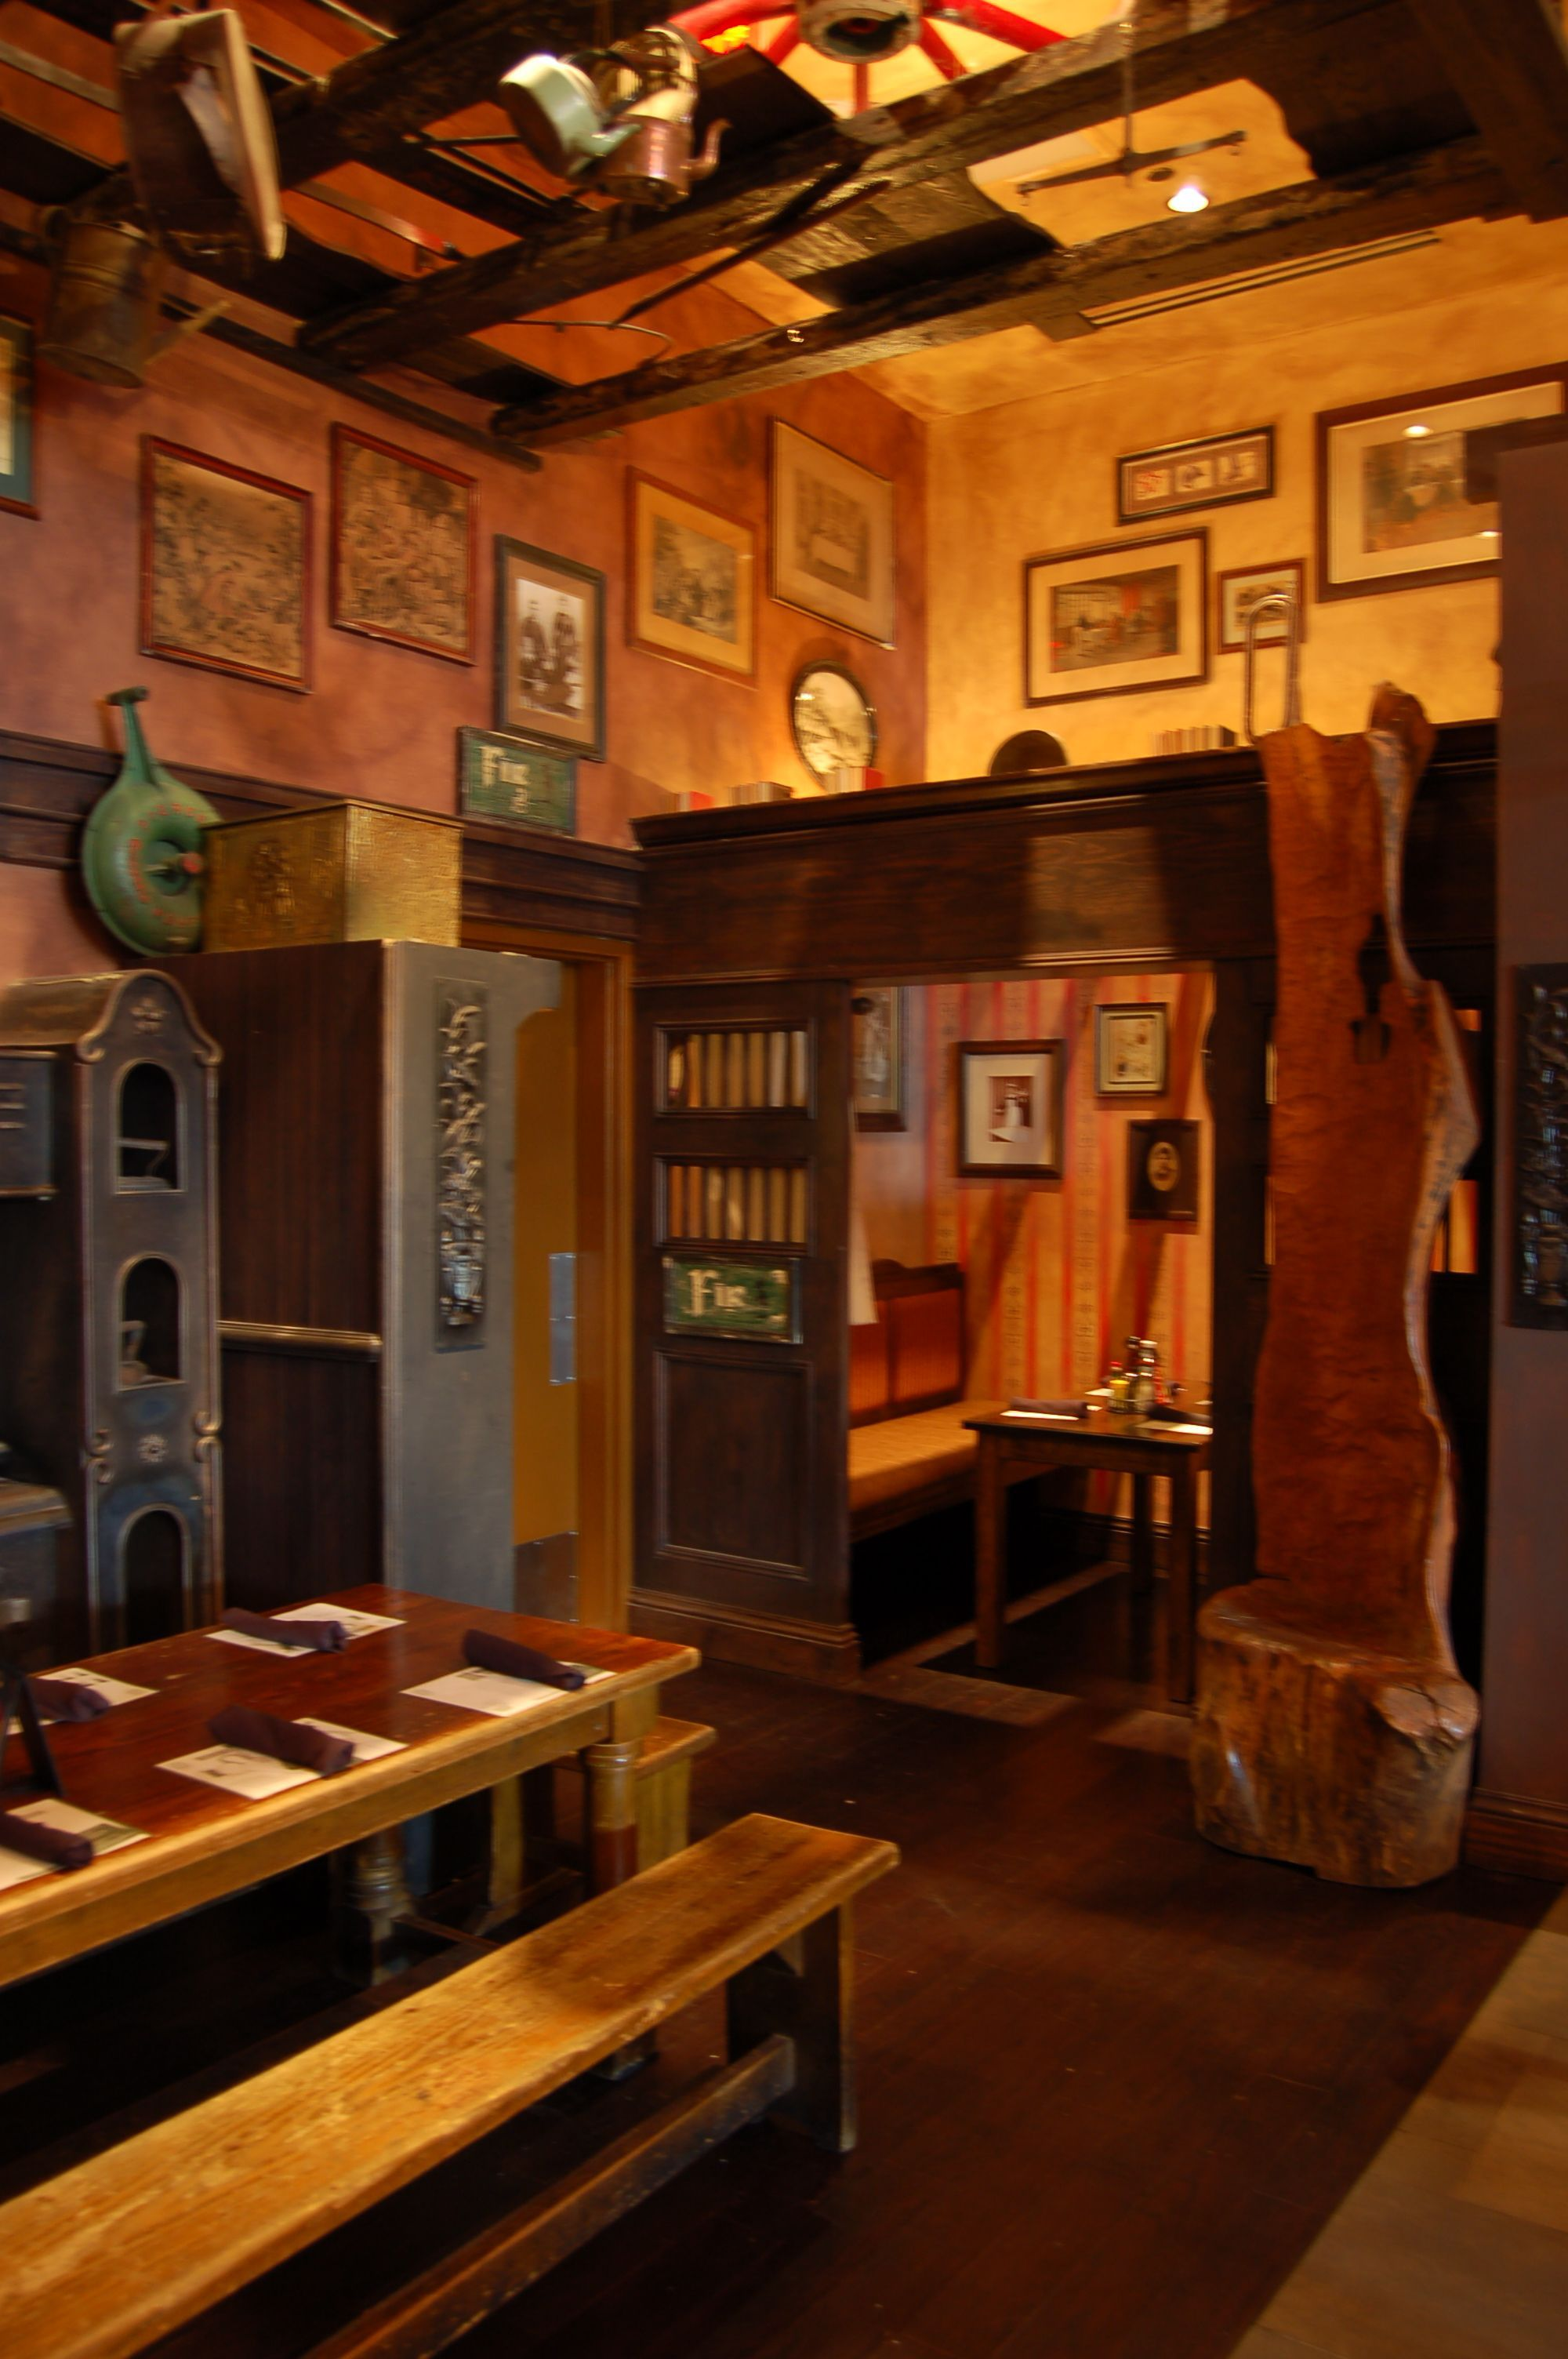 Man Cave Accessories Ireland : Image result for bar snug traveling sound museum